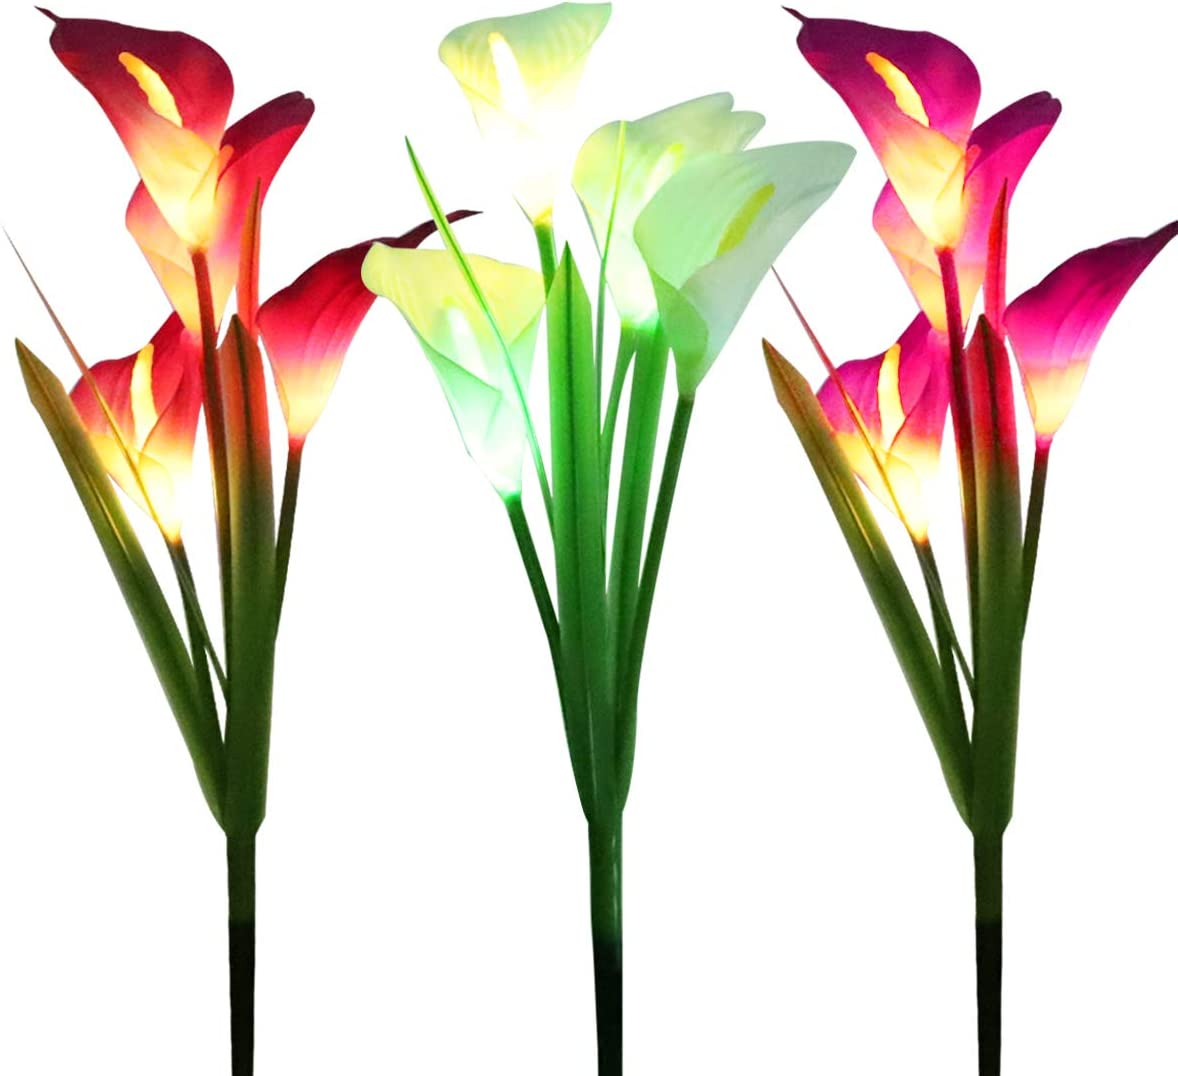 WOSPORTS 3 Pack Solar Lights Outdoor Garden Stake Flower Lights with Total 12 Lily Flower, Multi Color Changing LED Lily Solar Powered Lights for Patio, Lawn, Garden, Yard Decoration